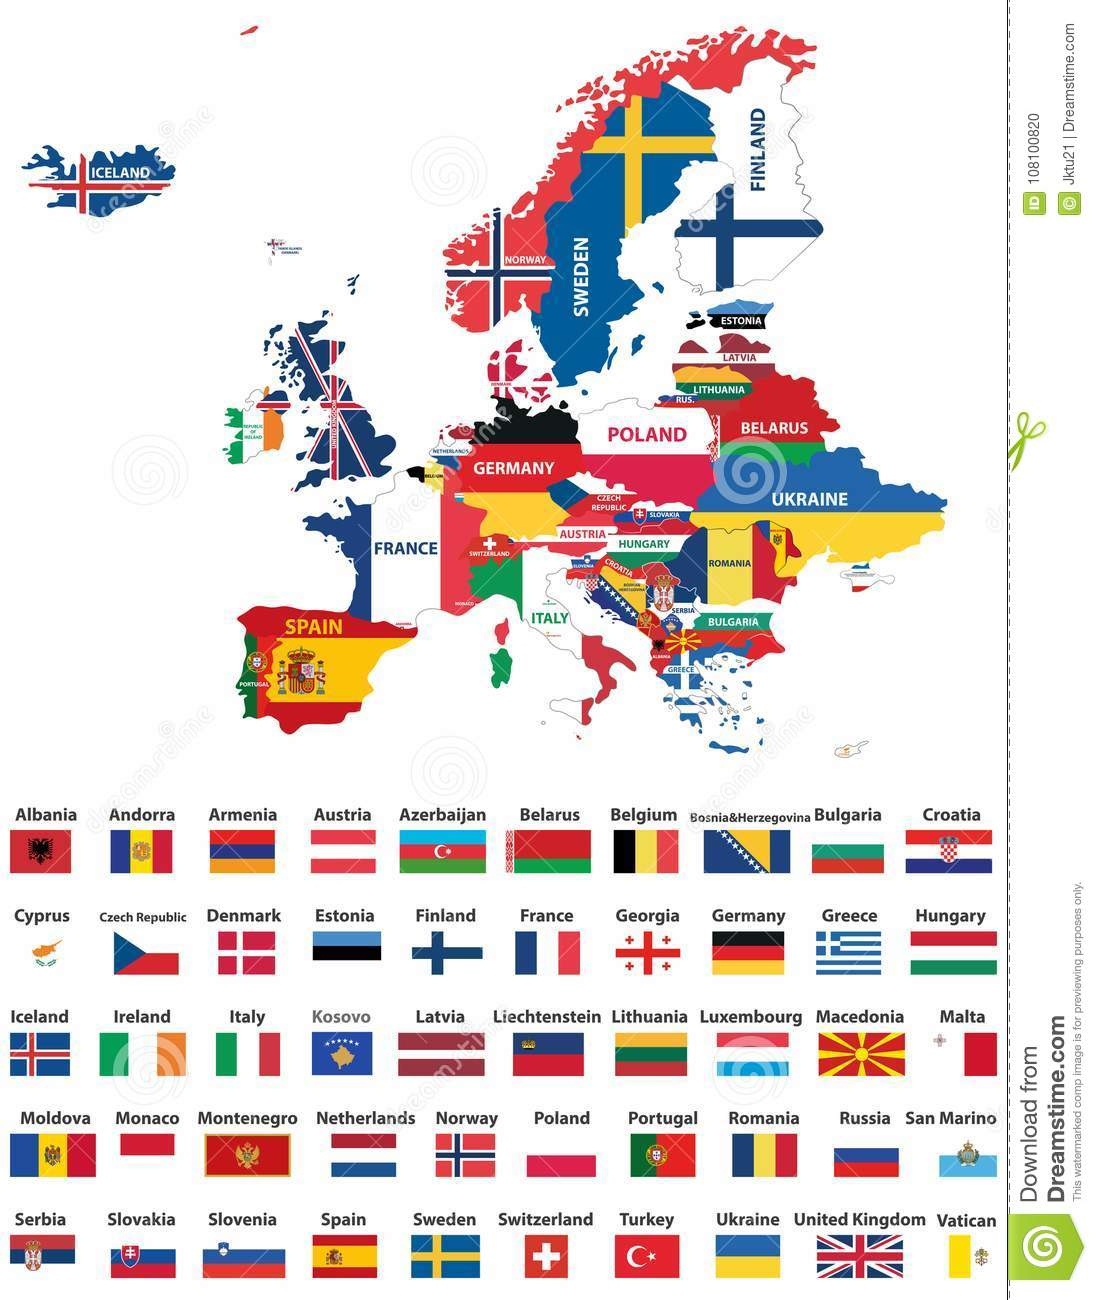 Europe Flag Map Europe Map Mixed With Countries National Flags. All European Flags